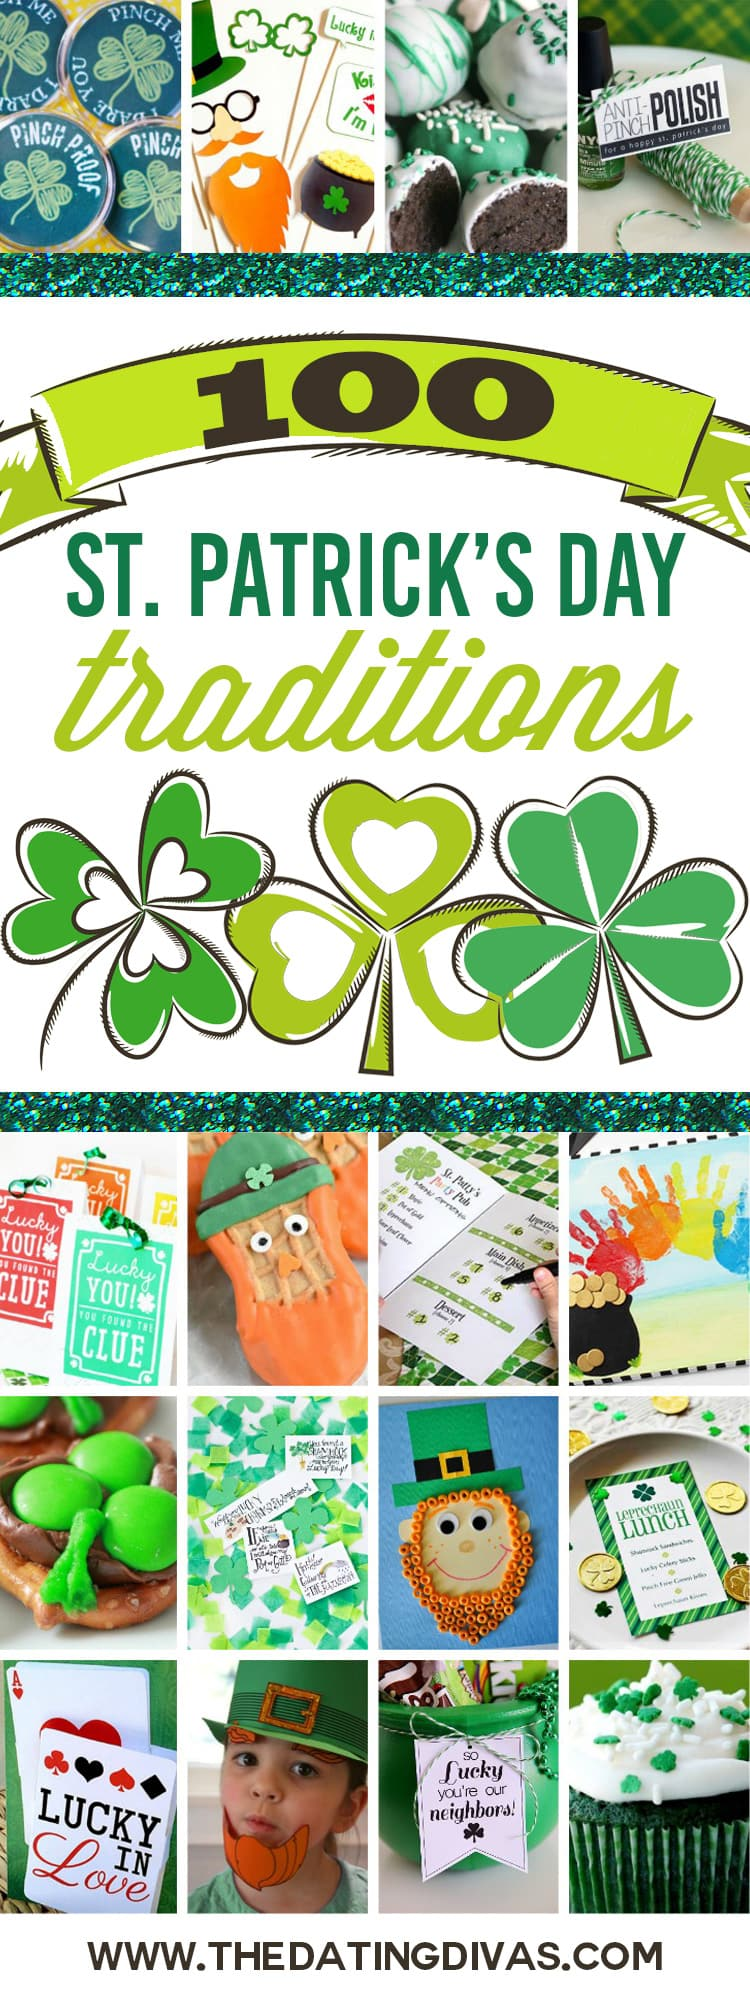 100 Top St. Patrick's Day Ideas